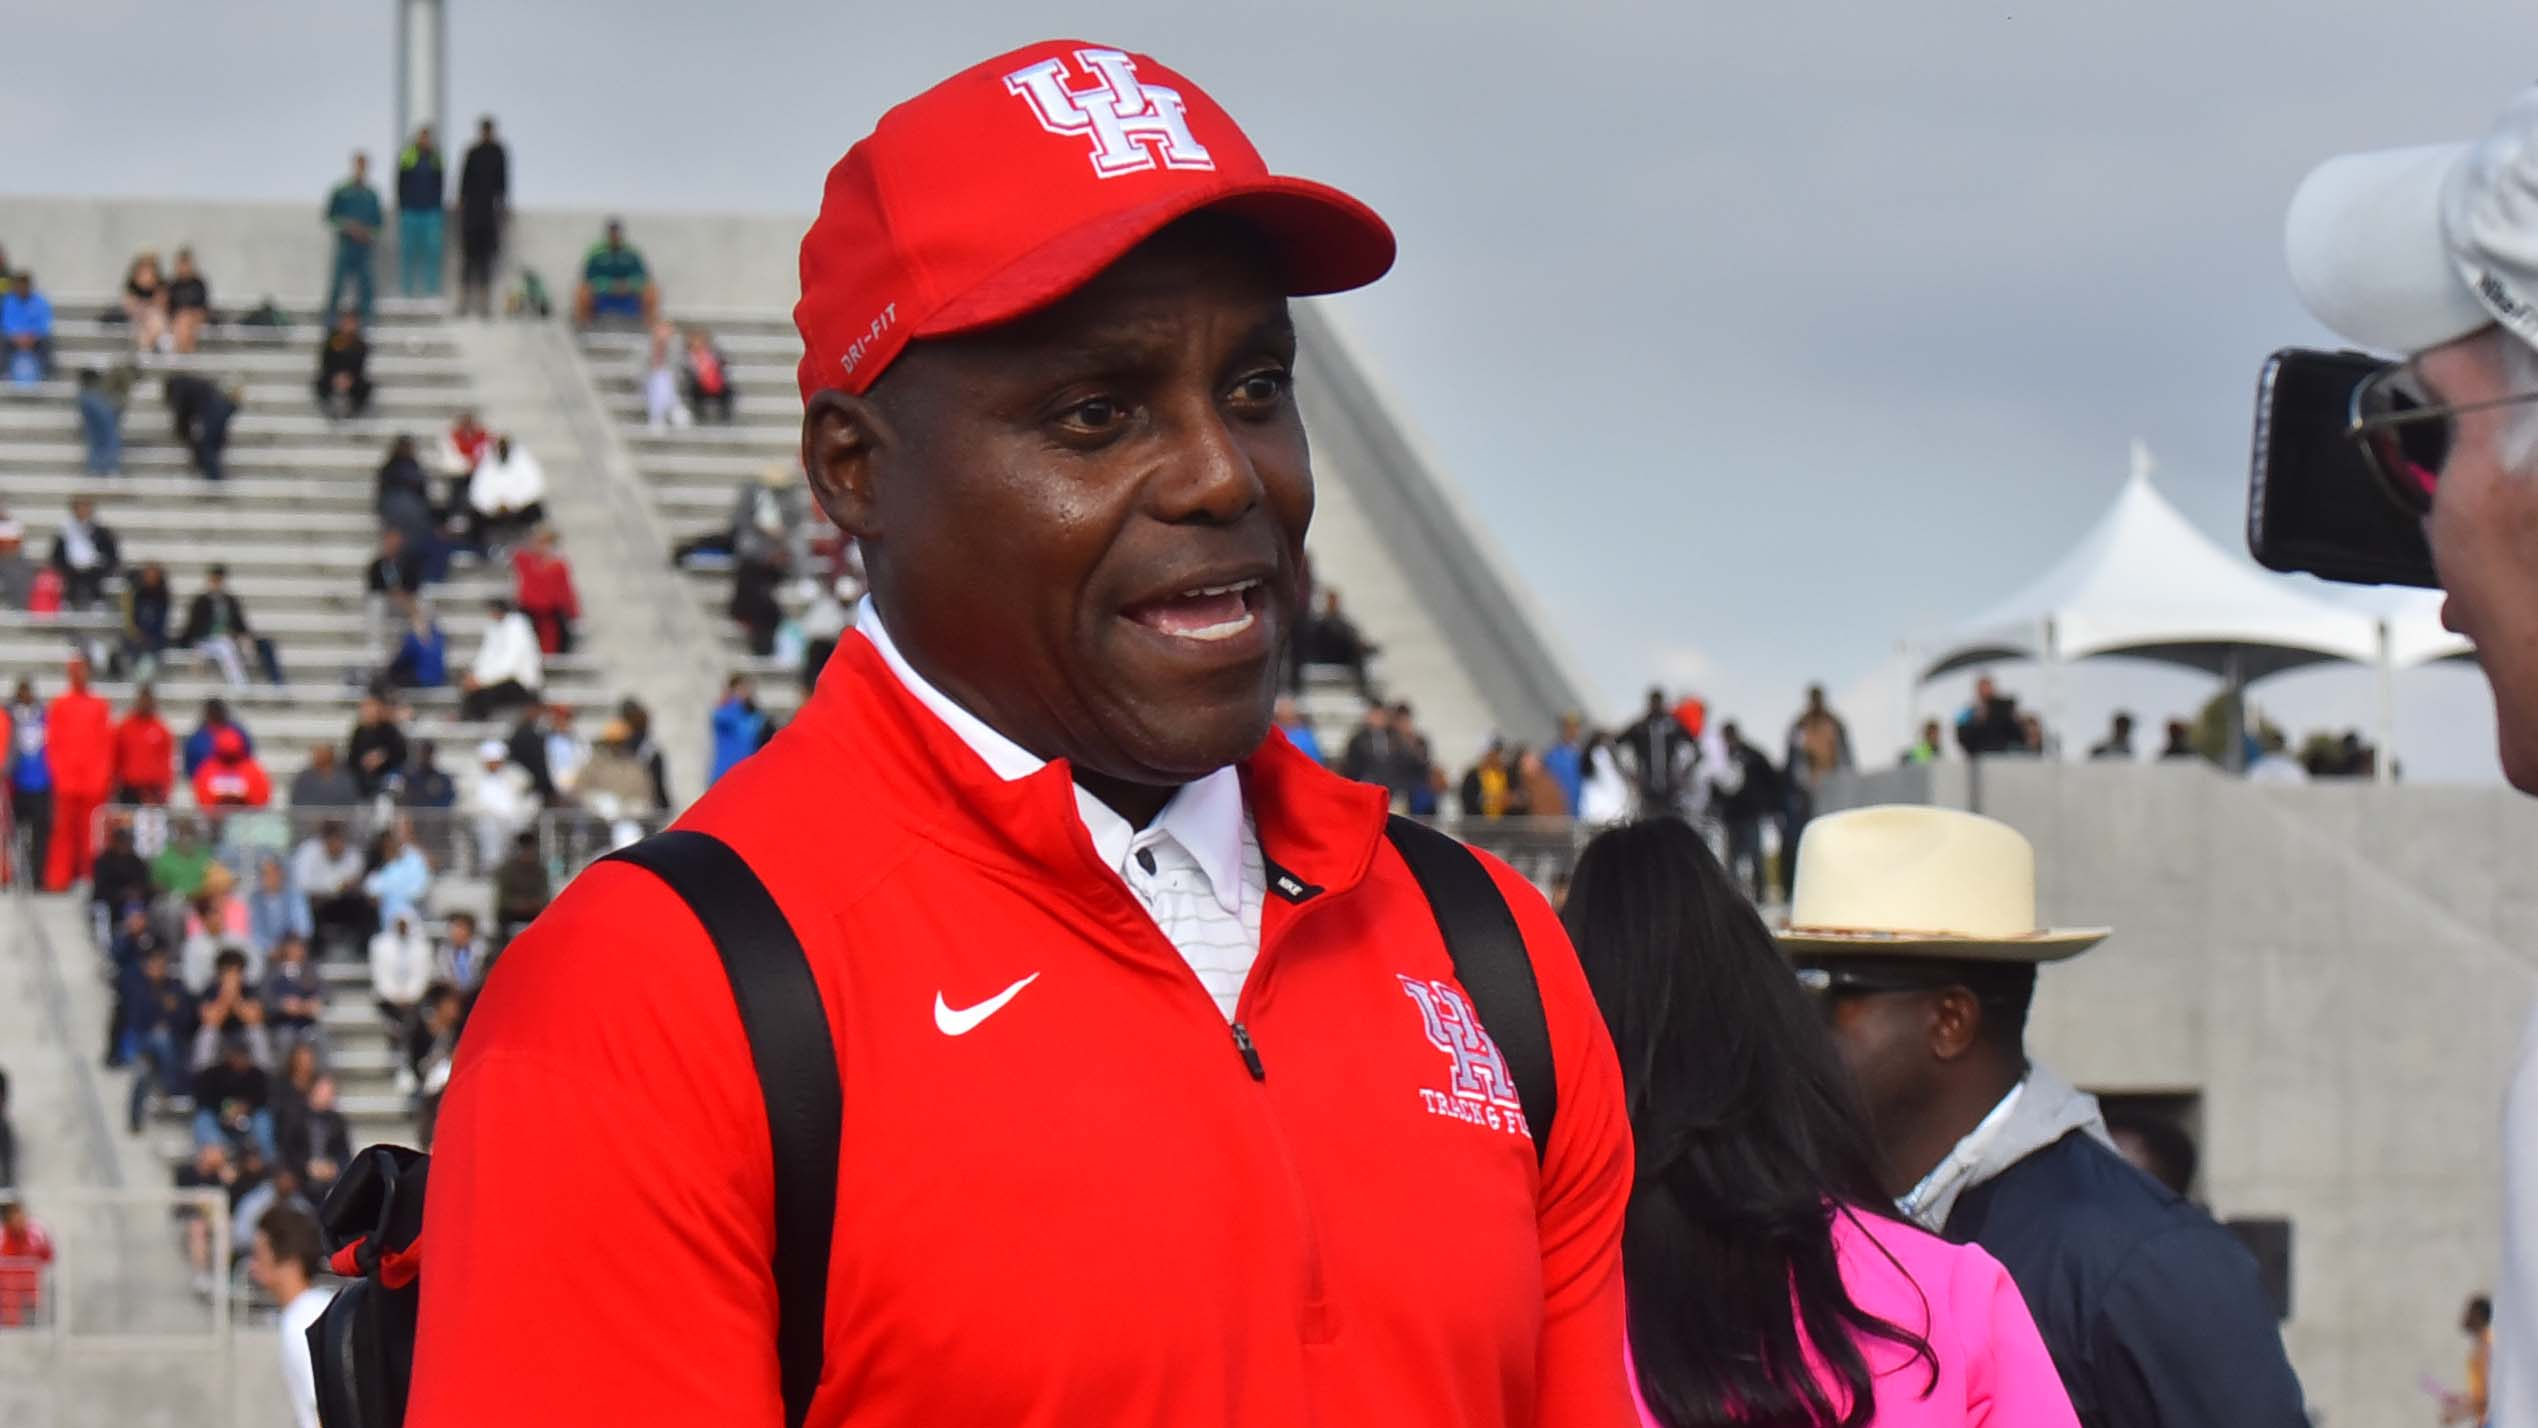 Nine-time Olympic gold medalist Carl Lewis spoke to a reporter at the Mt. Sac Relays in Torrance, where he coached a team from the University of Houston.